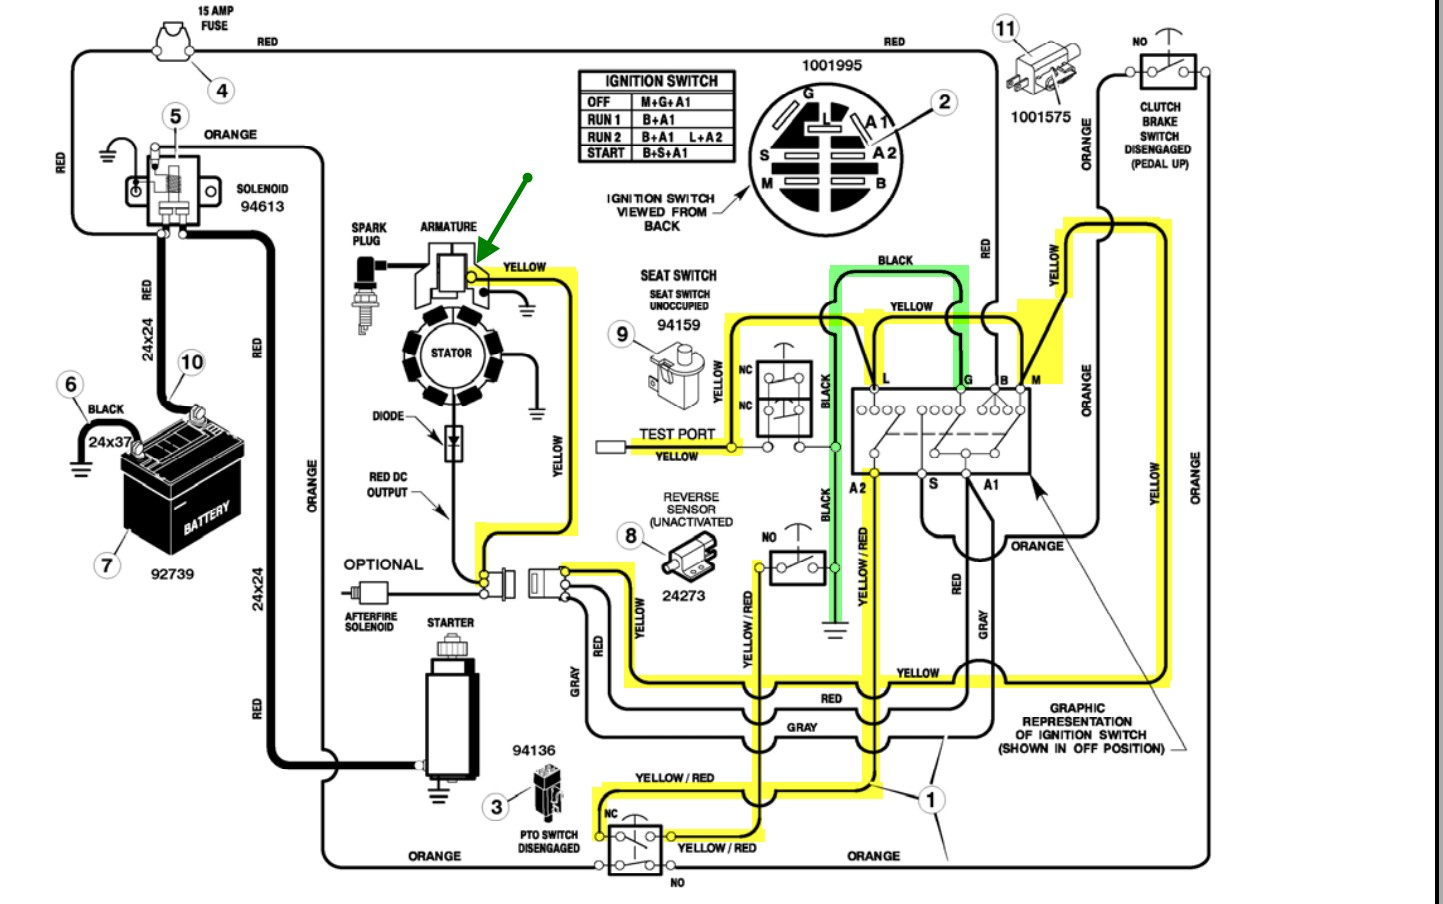 briggs and stratton wiring diagram 16 hp wiring diagram briggs rh 107 191 48 167 Briggs and Stratton Magneto Wiring 300 421 Briggs and Stratton Magneto Wiring 300 421